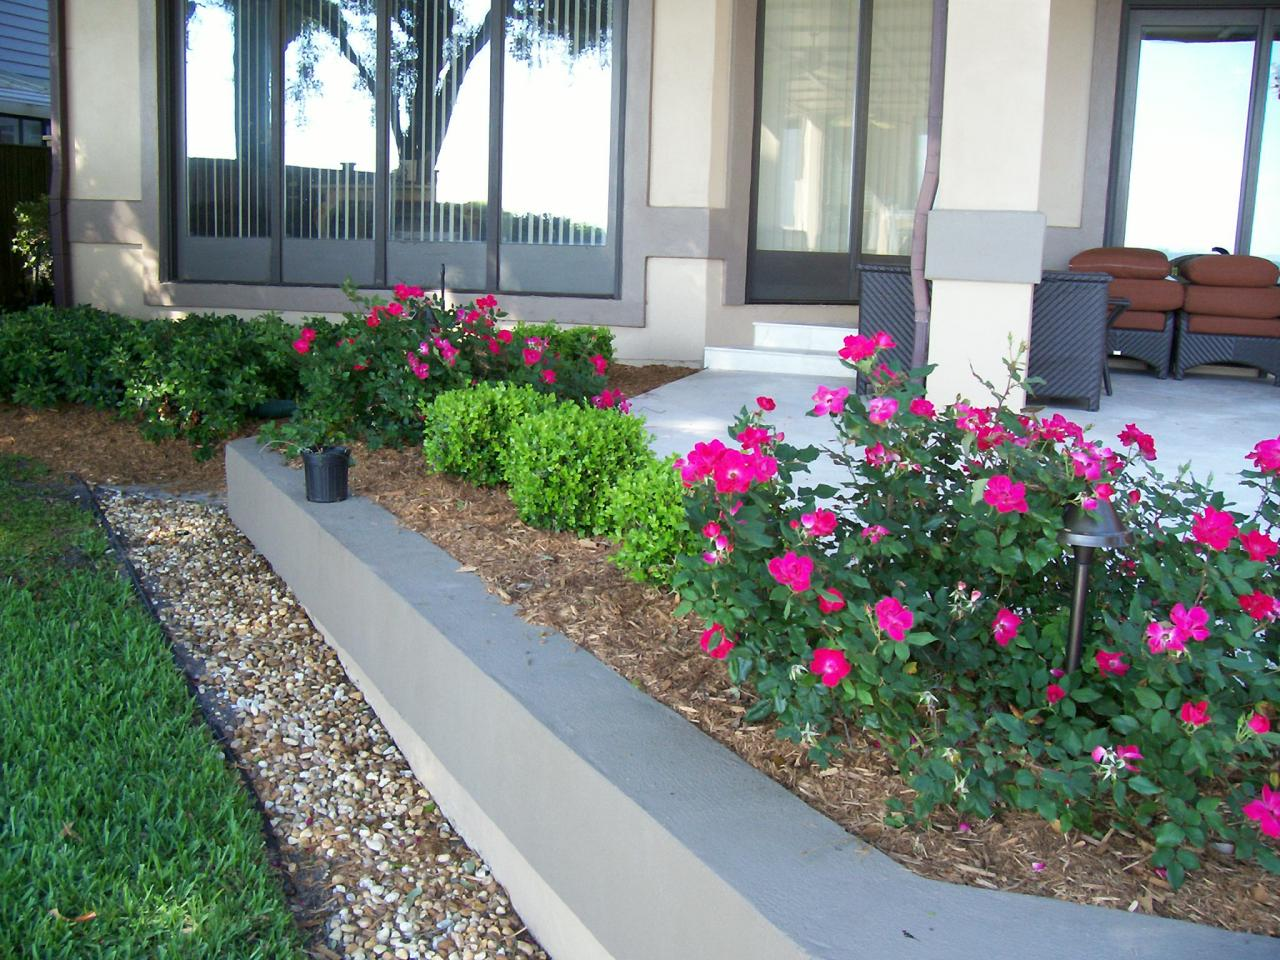 Landscaping With Boxwoods And Roses : Raised planters with boxwoods and knockout roses best